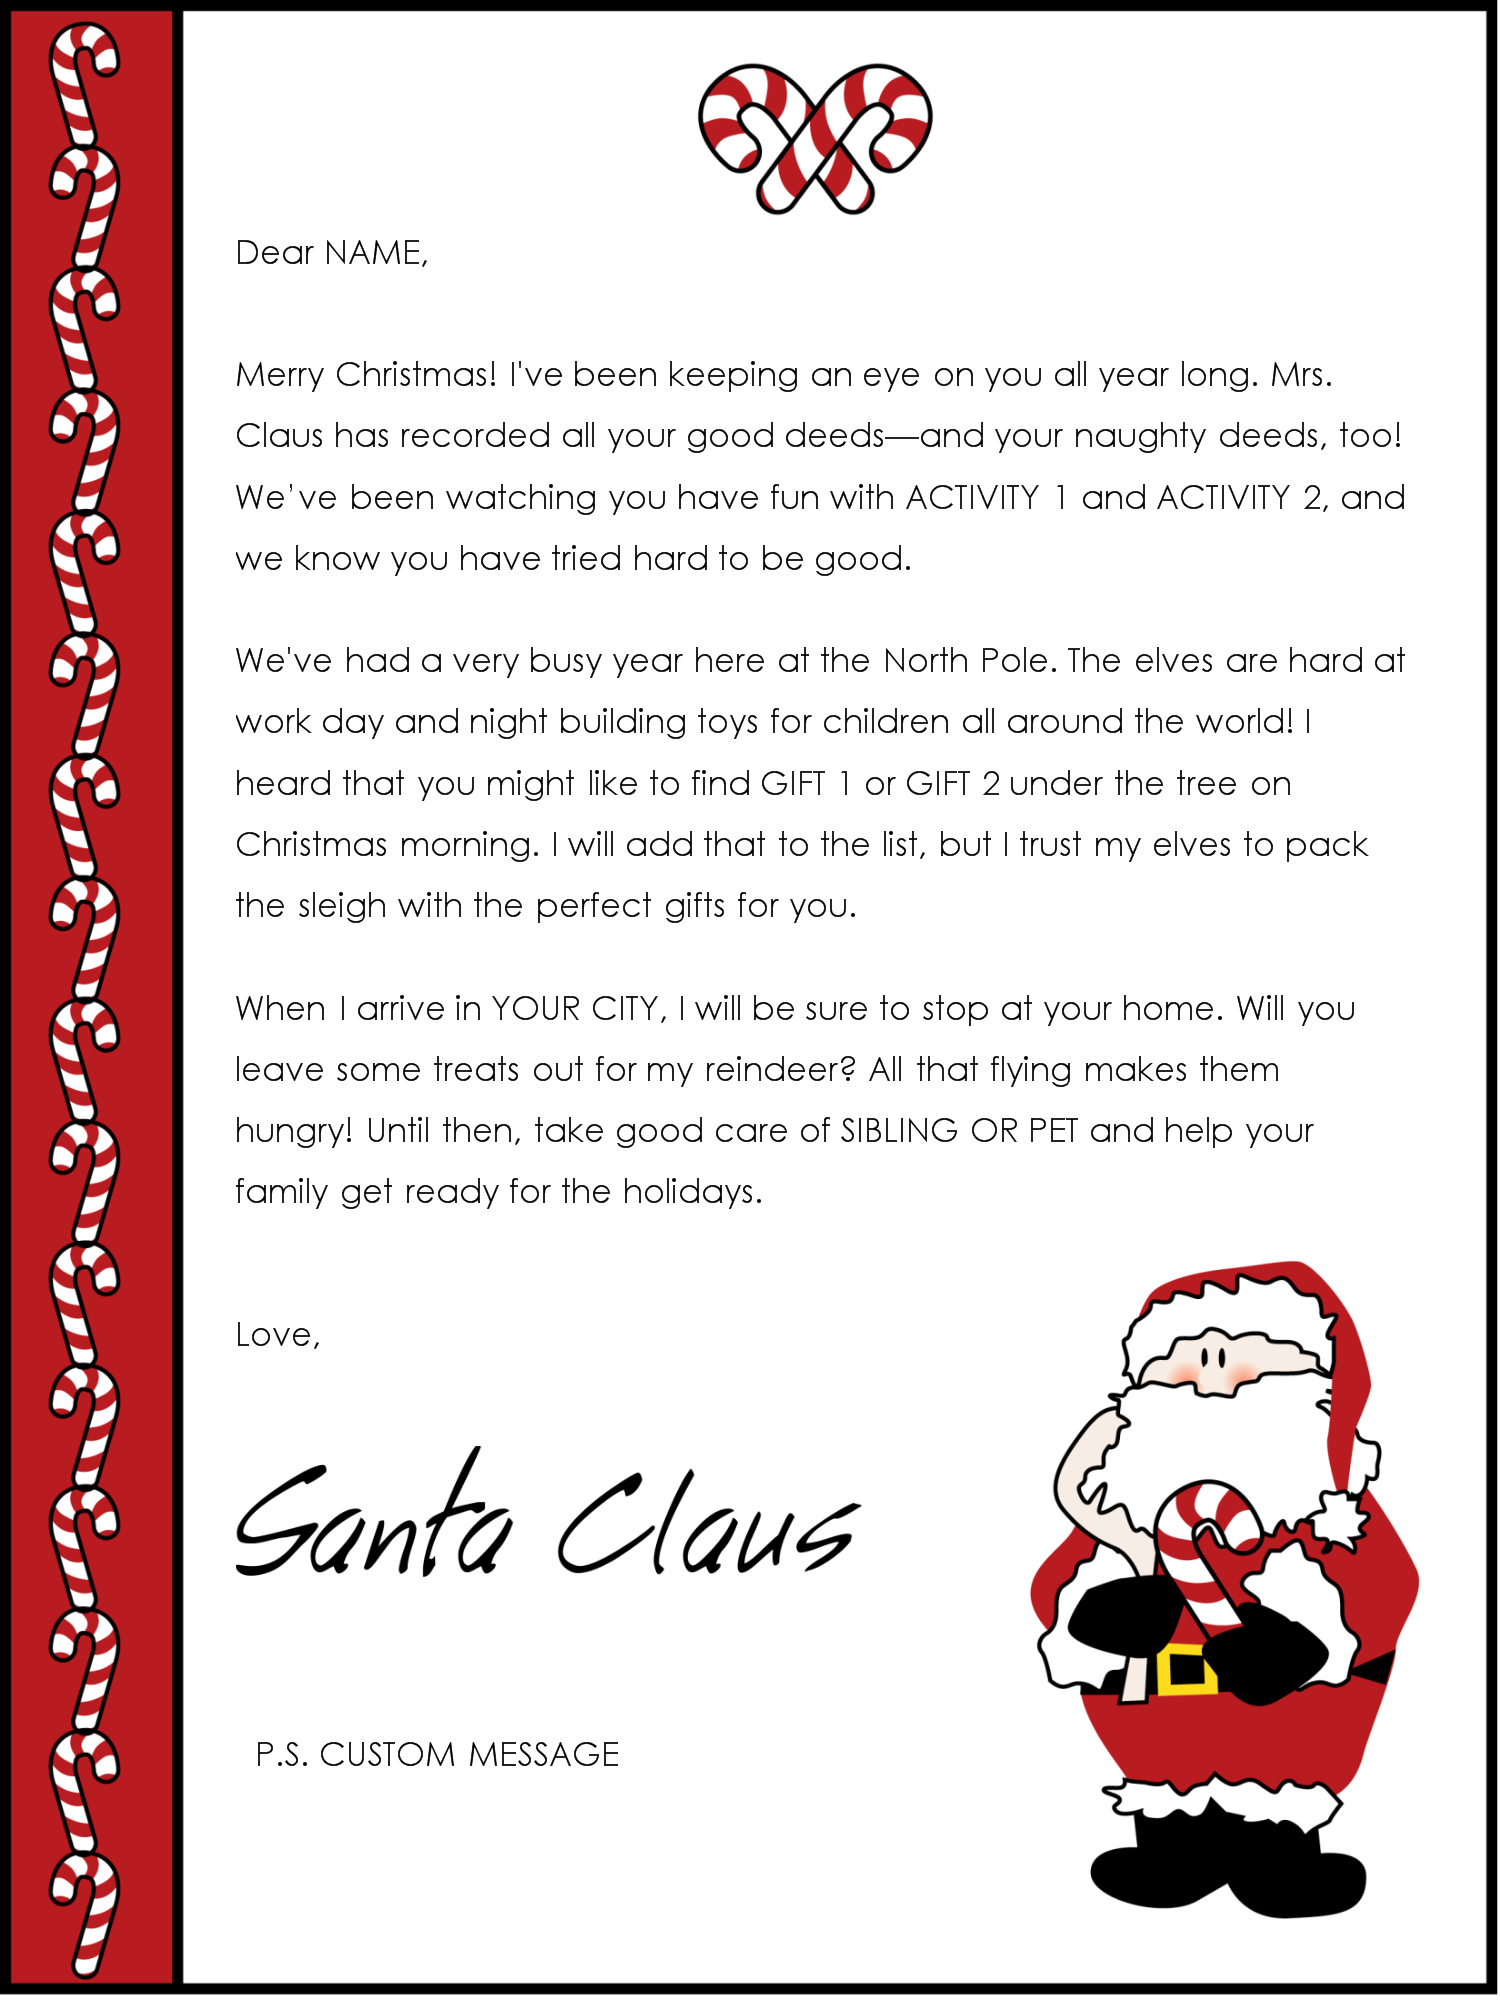 Free santa letter templates downloads christmas letter from santa free santa letter templates downloads christmas letter from santa spiritdancerdesigns Gallery